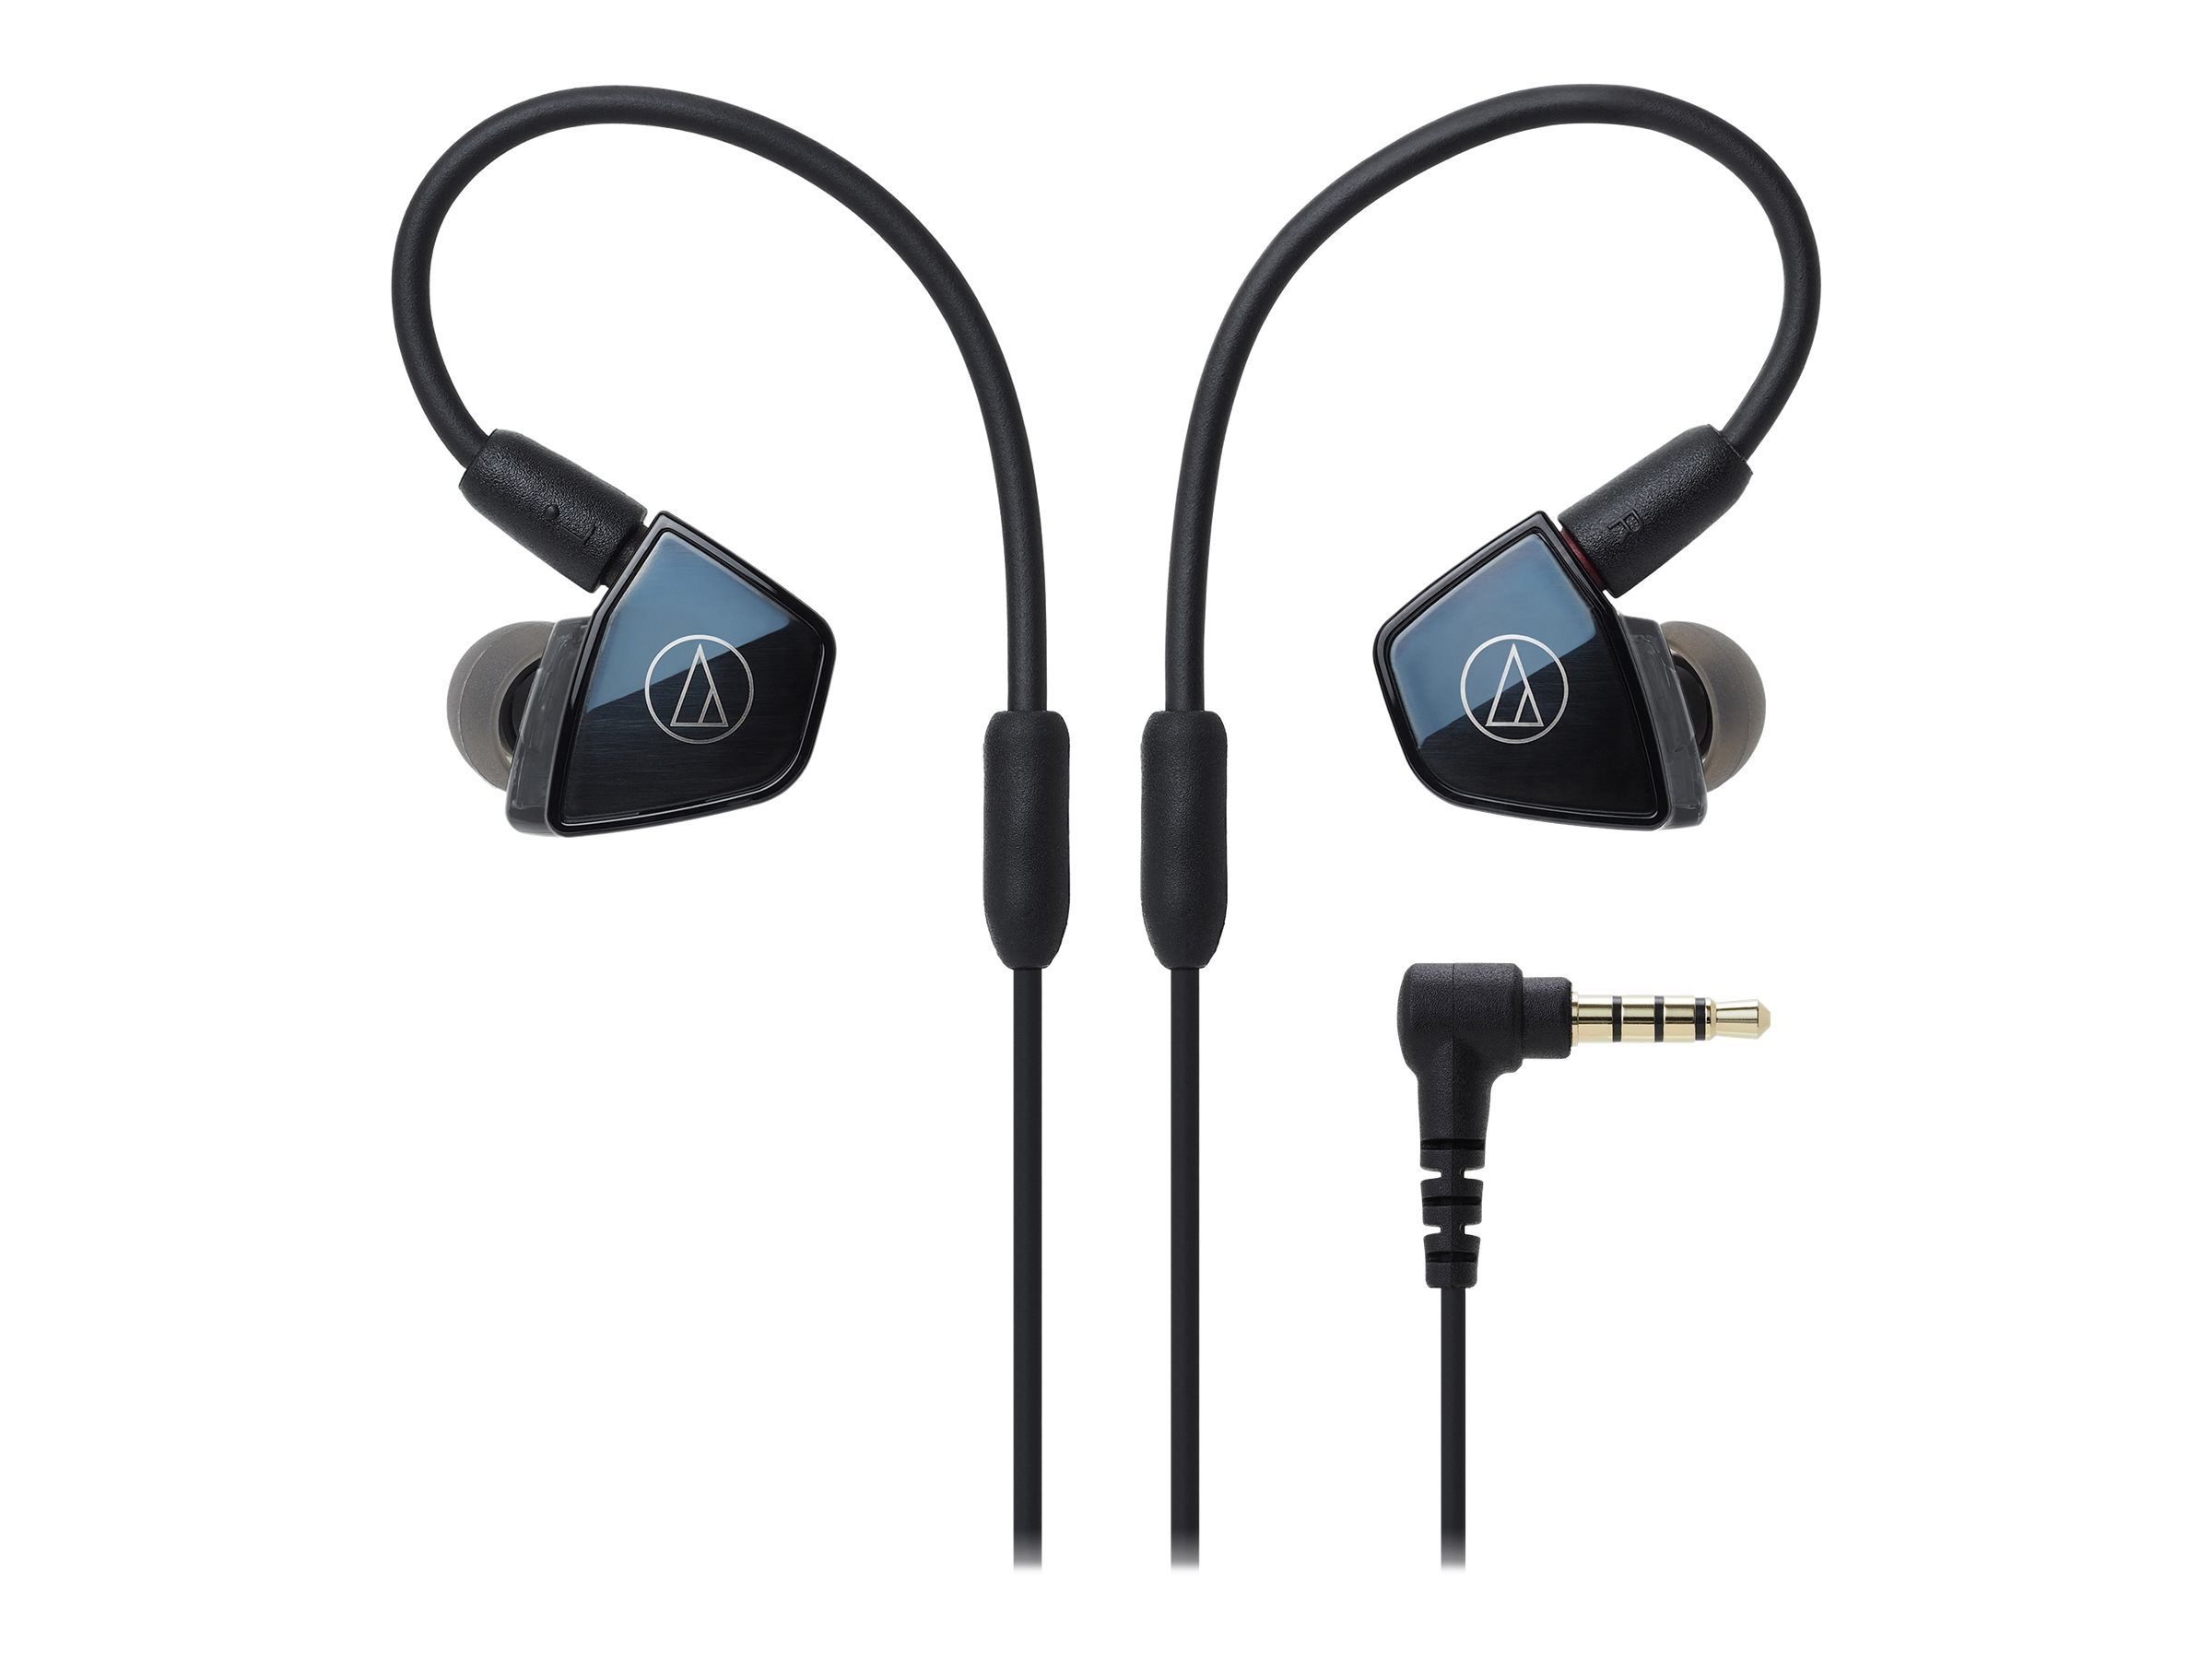 Audio-Technica ATH-LS400iS - earphones with mic